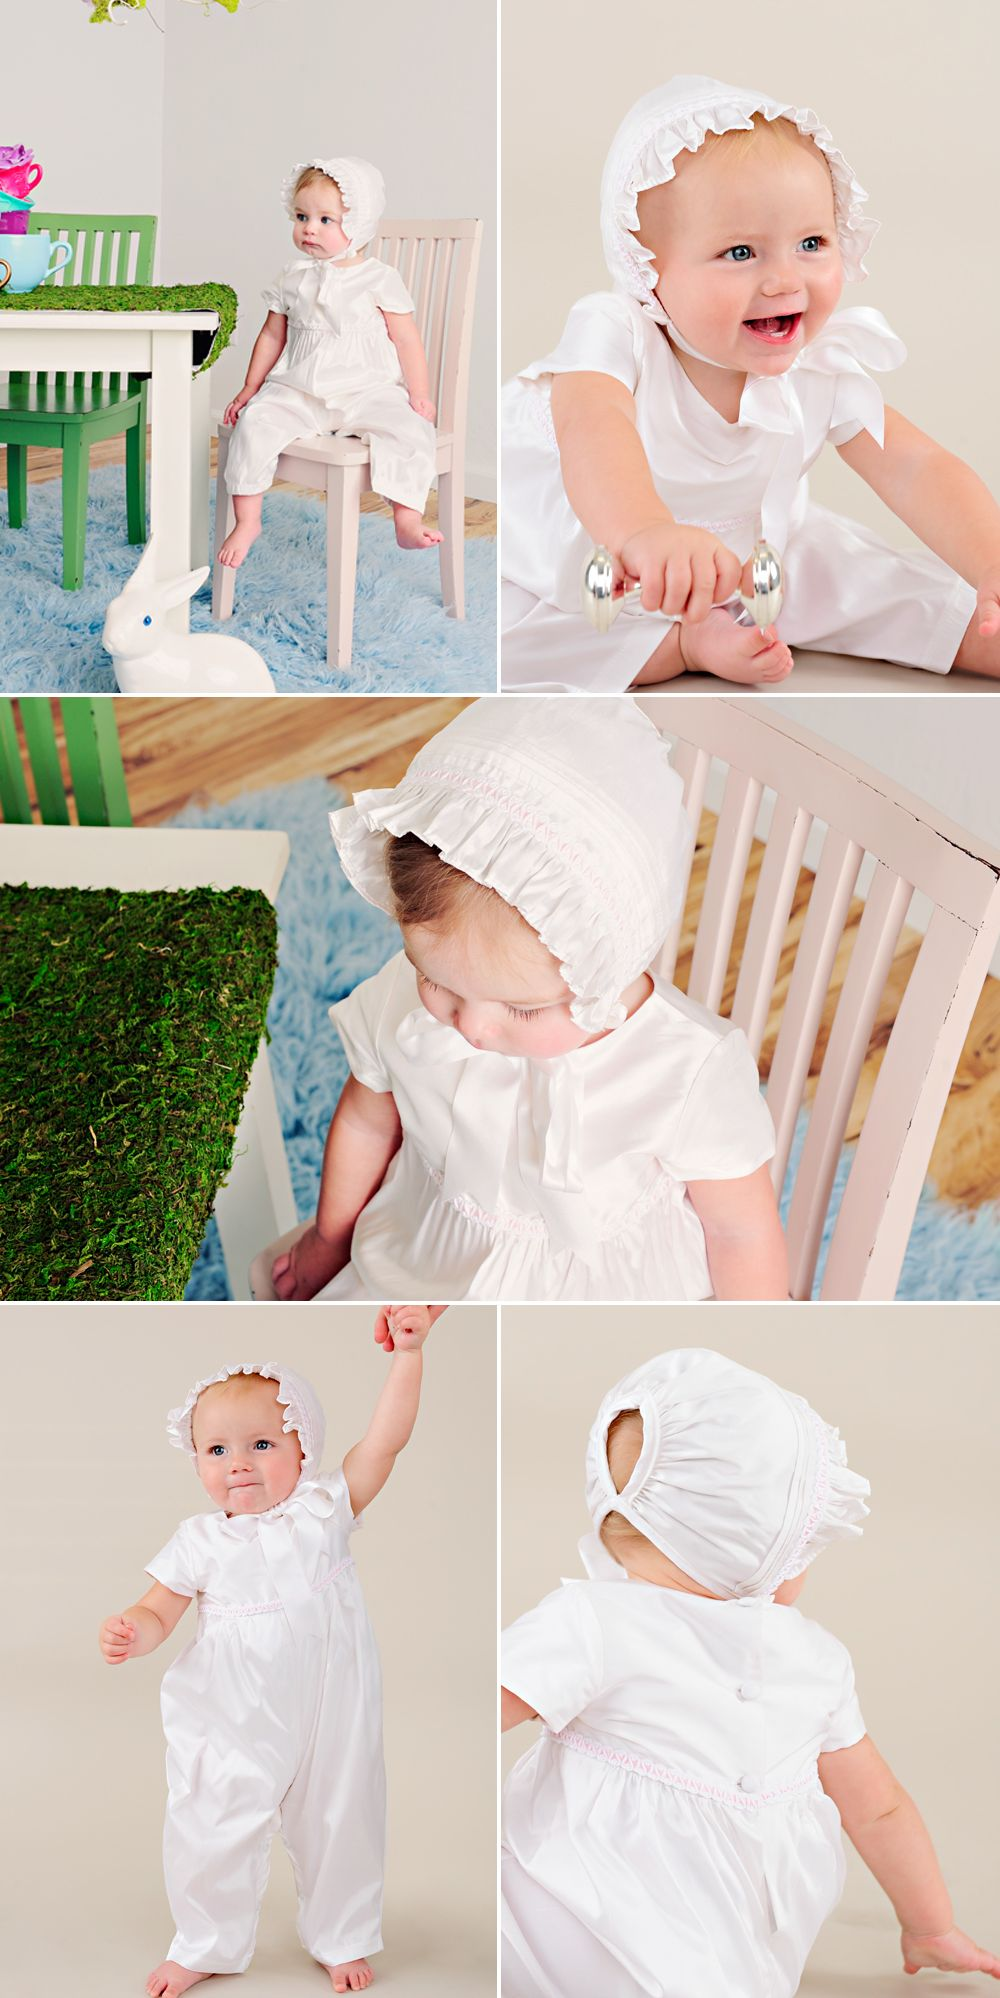 Perfect for Easter with a darling pink braid, our Phoebe is adorable with matching bonnet.